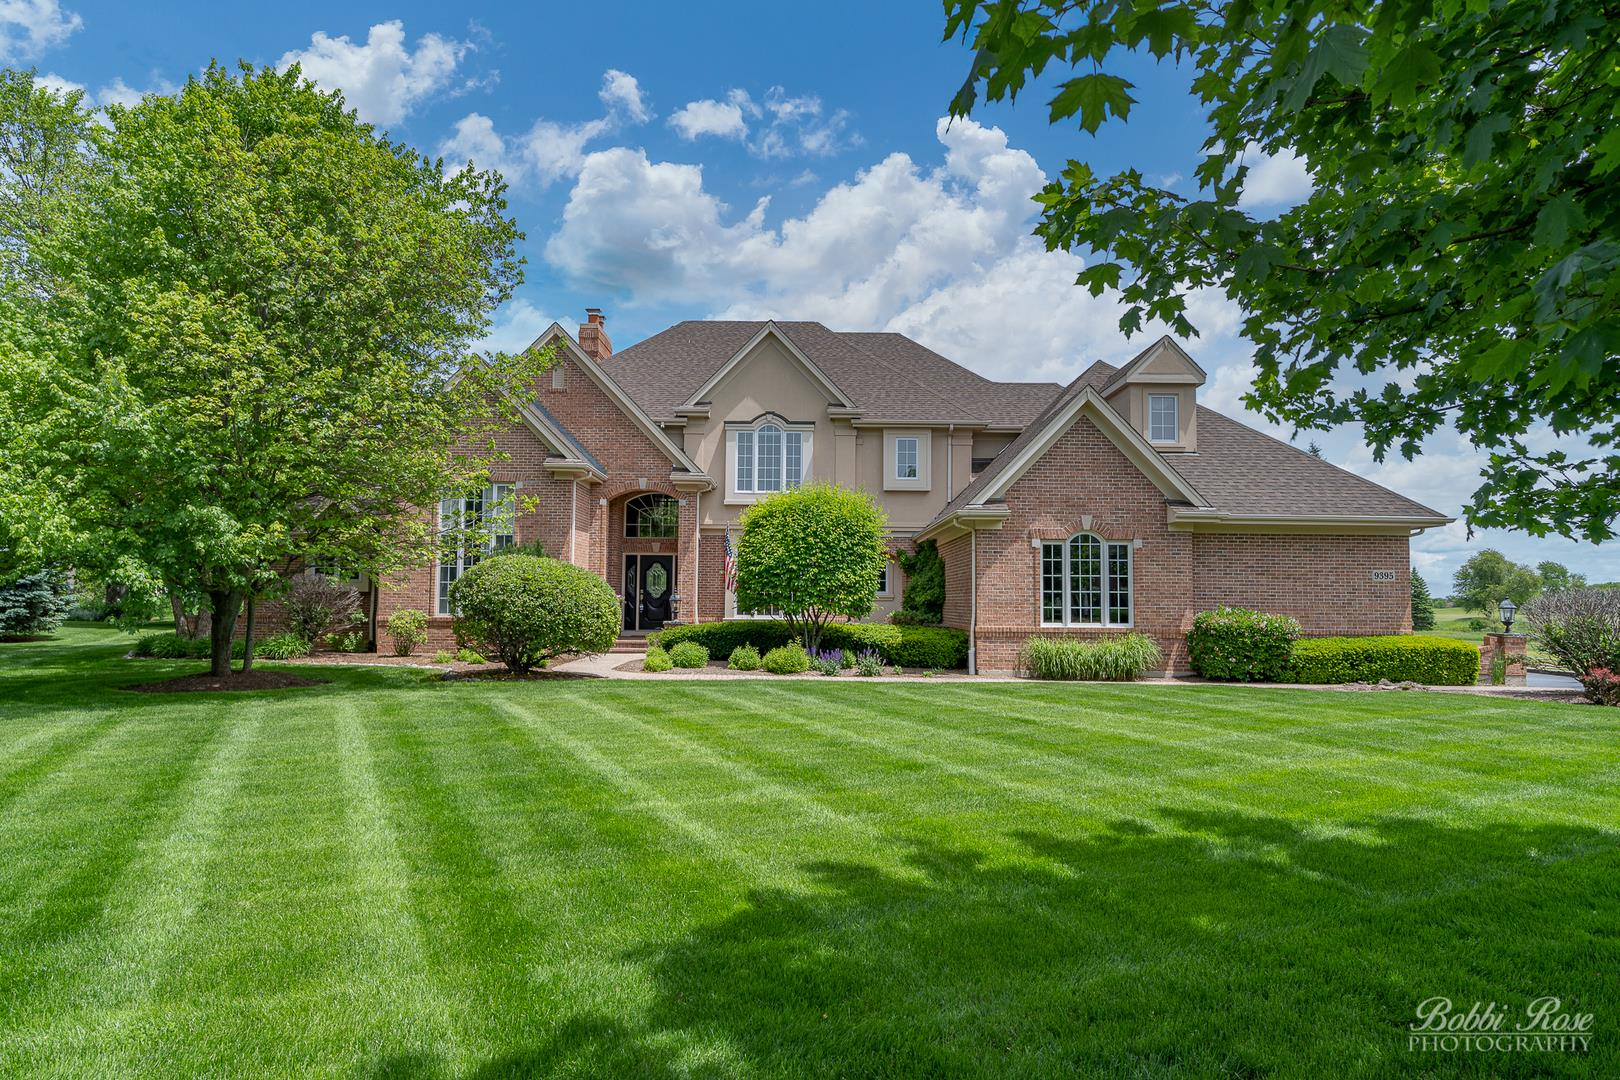 9395 Nicklaus Lane, Lakewood, IL 60014 - #: 11011414